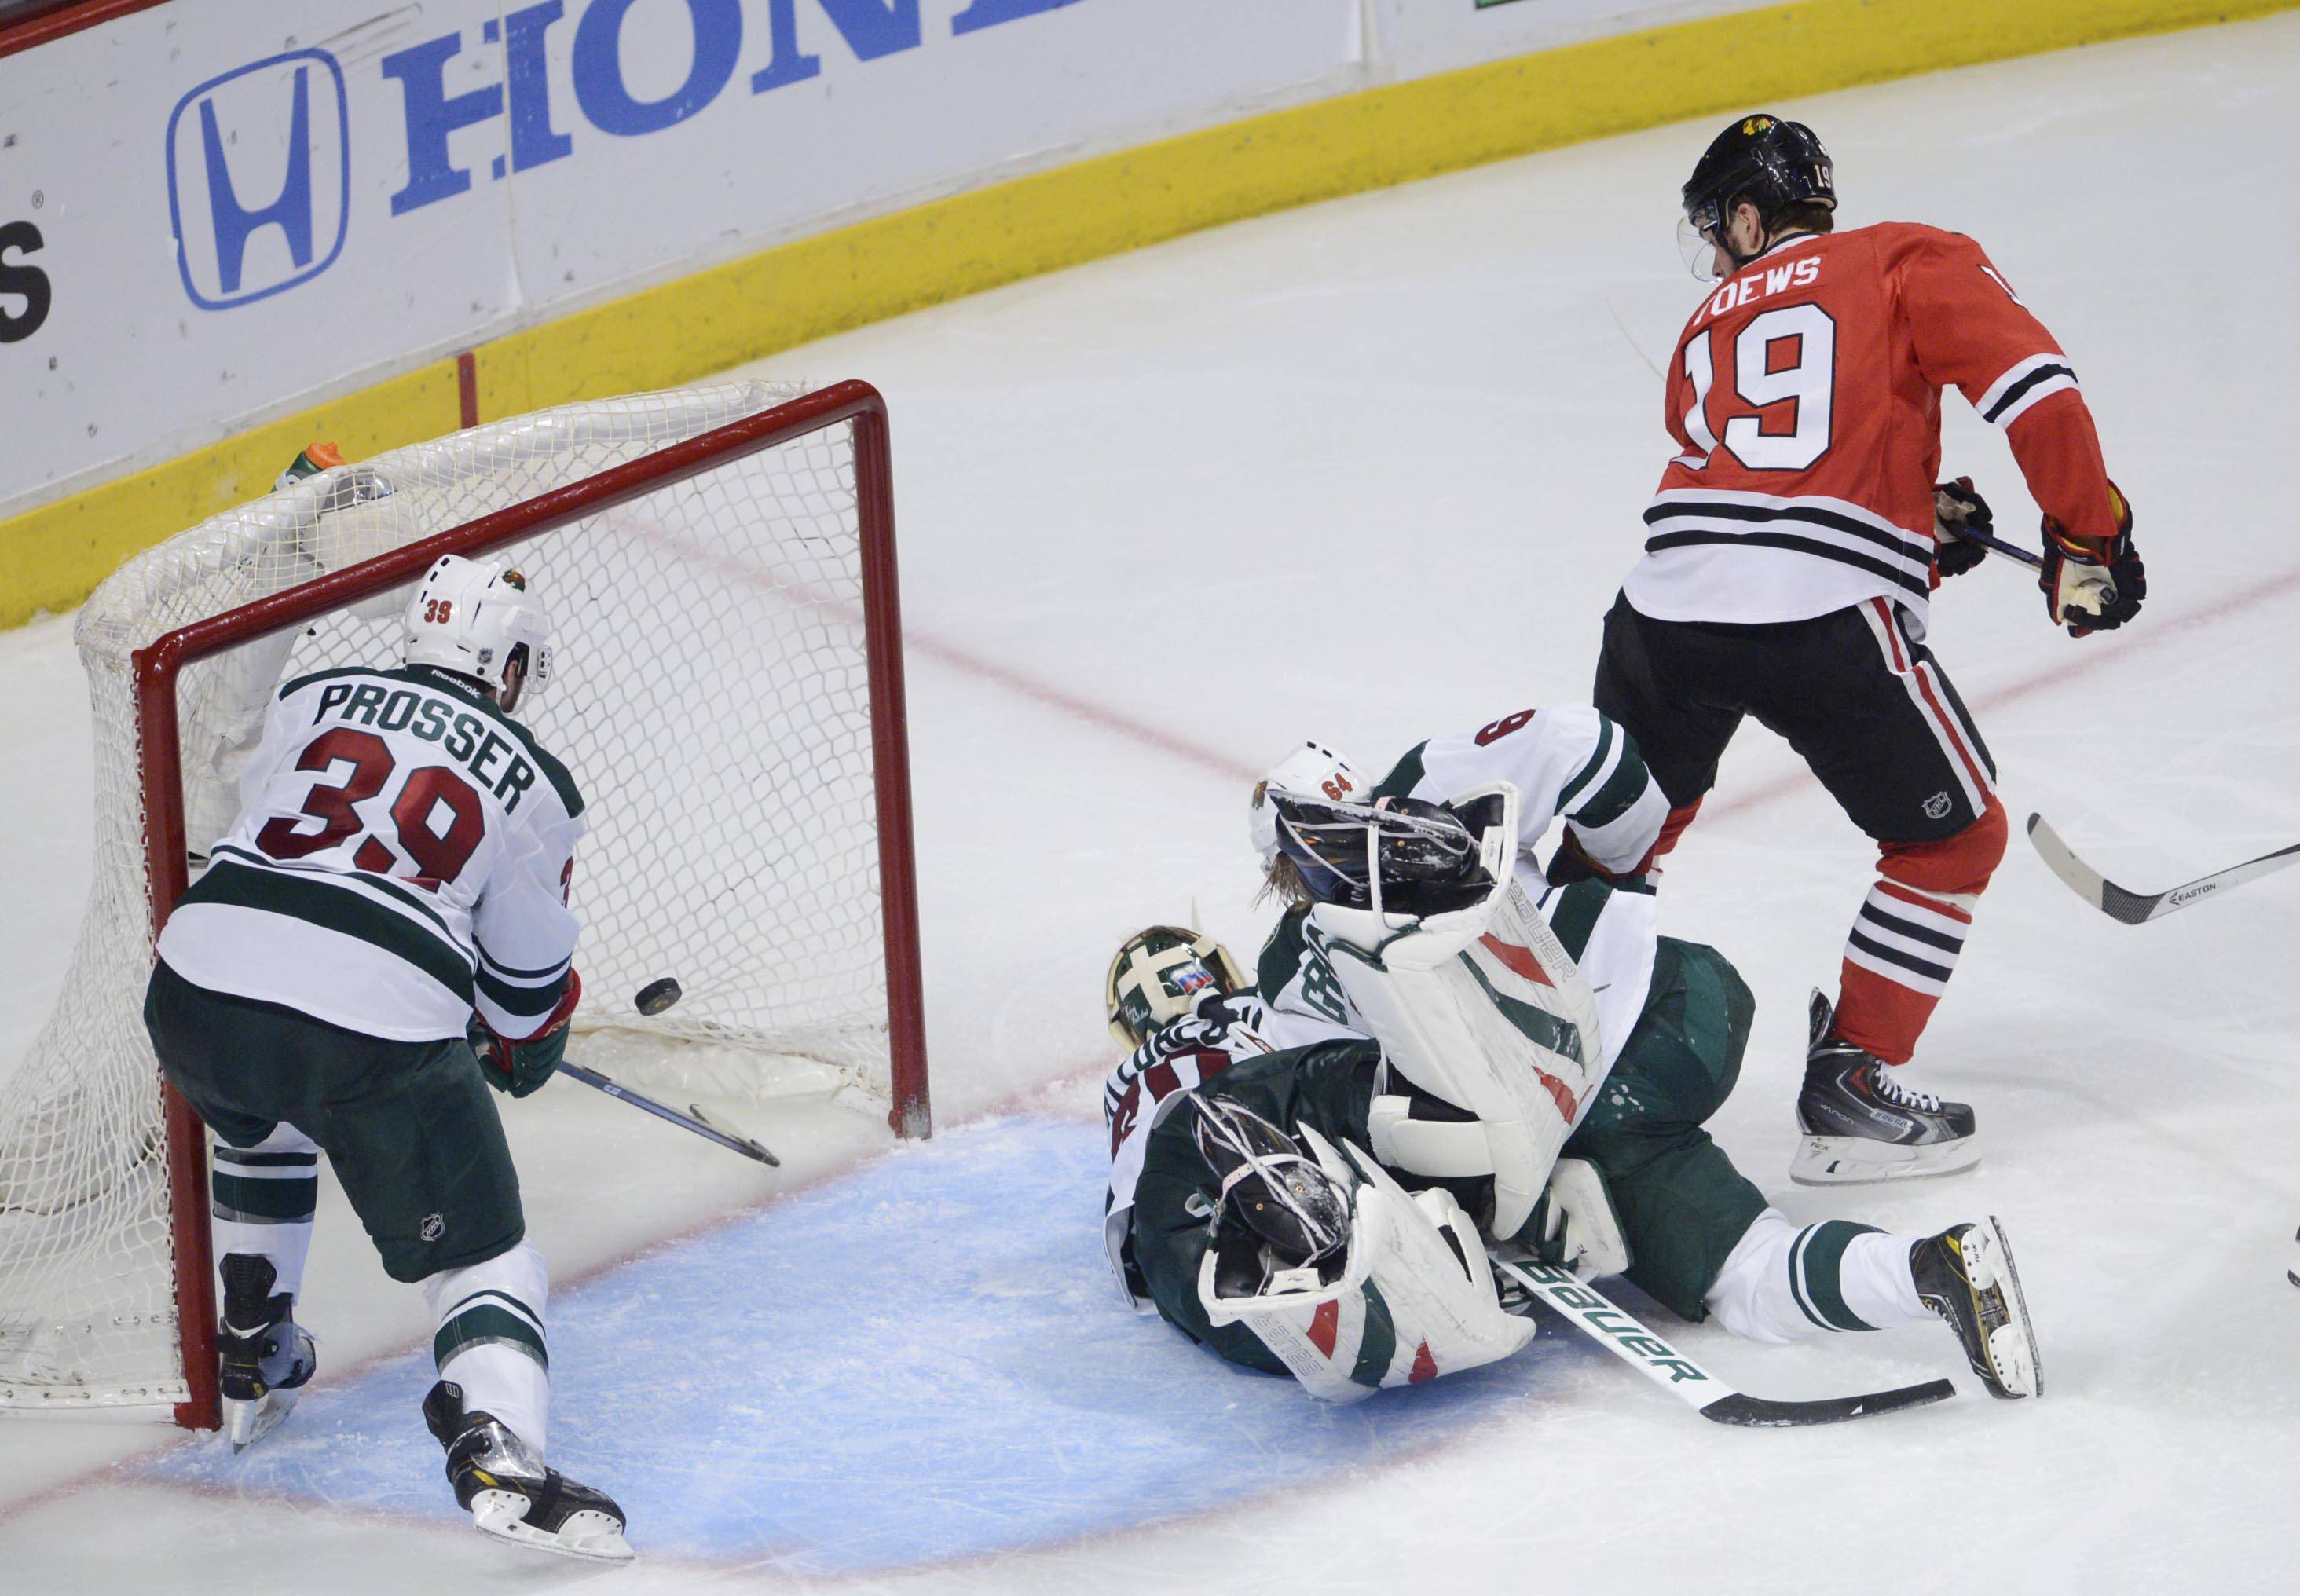 Chicago Blackhawks center Jonathan Toews scores his game-winning goal of the game against the Minnesota Wild in the third period.